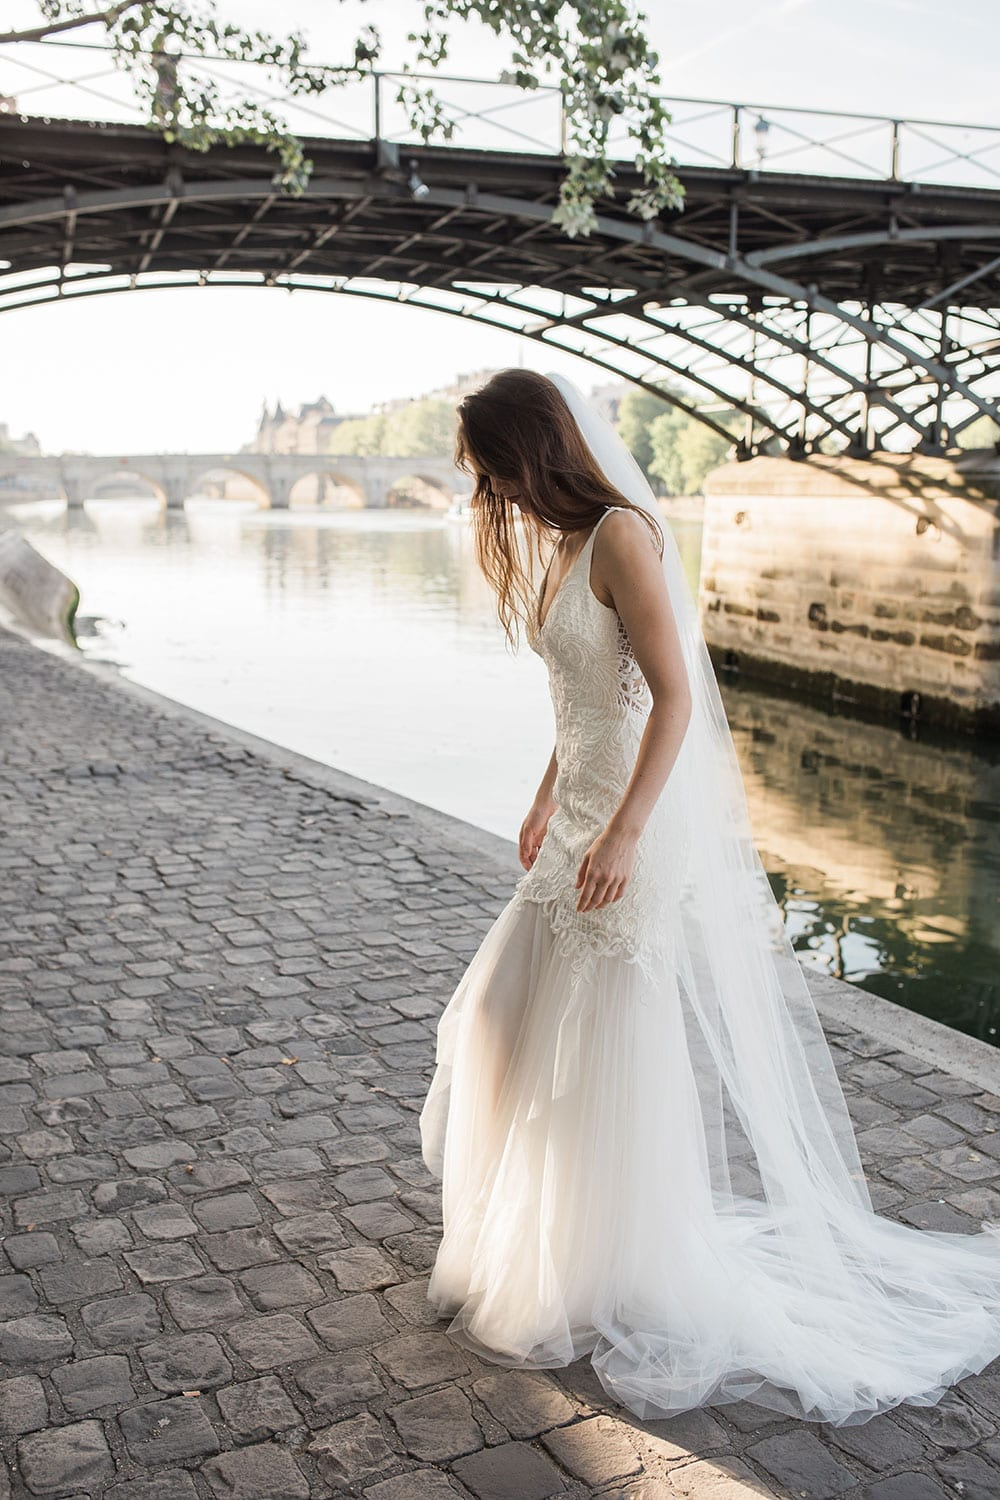 Model wearing Vinka Design Joanna Wedding Dress, a Deep V-Neck Fitted Lace Wedding Gown walking along the river in Paris showing flowing train of dress